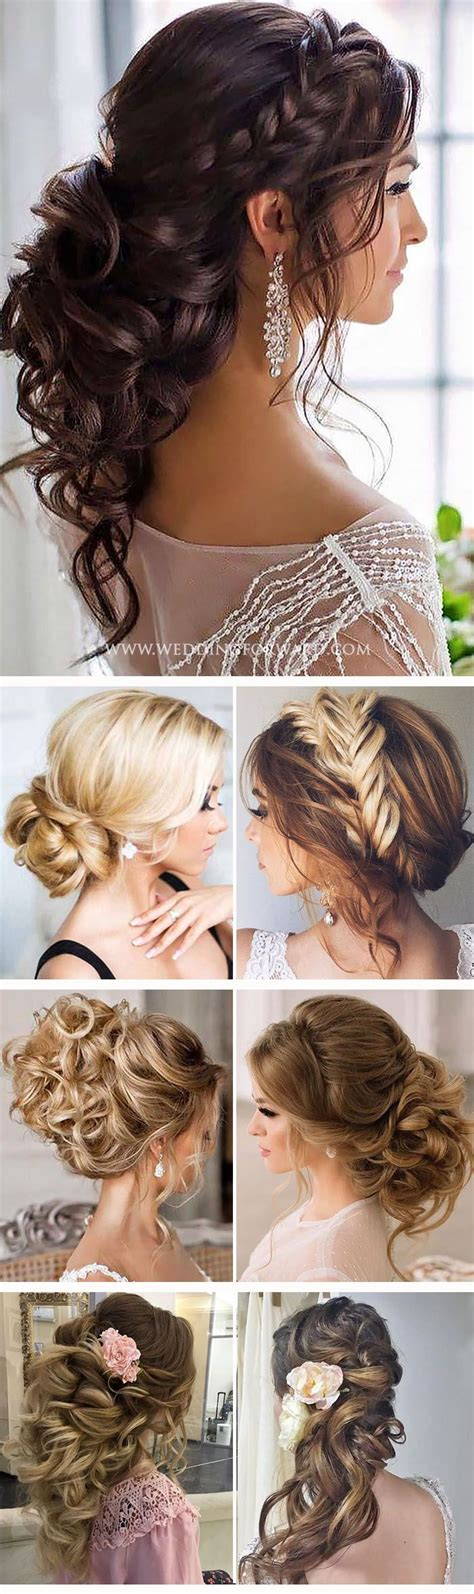 maid of honor hairstyles 33 trendy swept back wedding hairstyles fancy